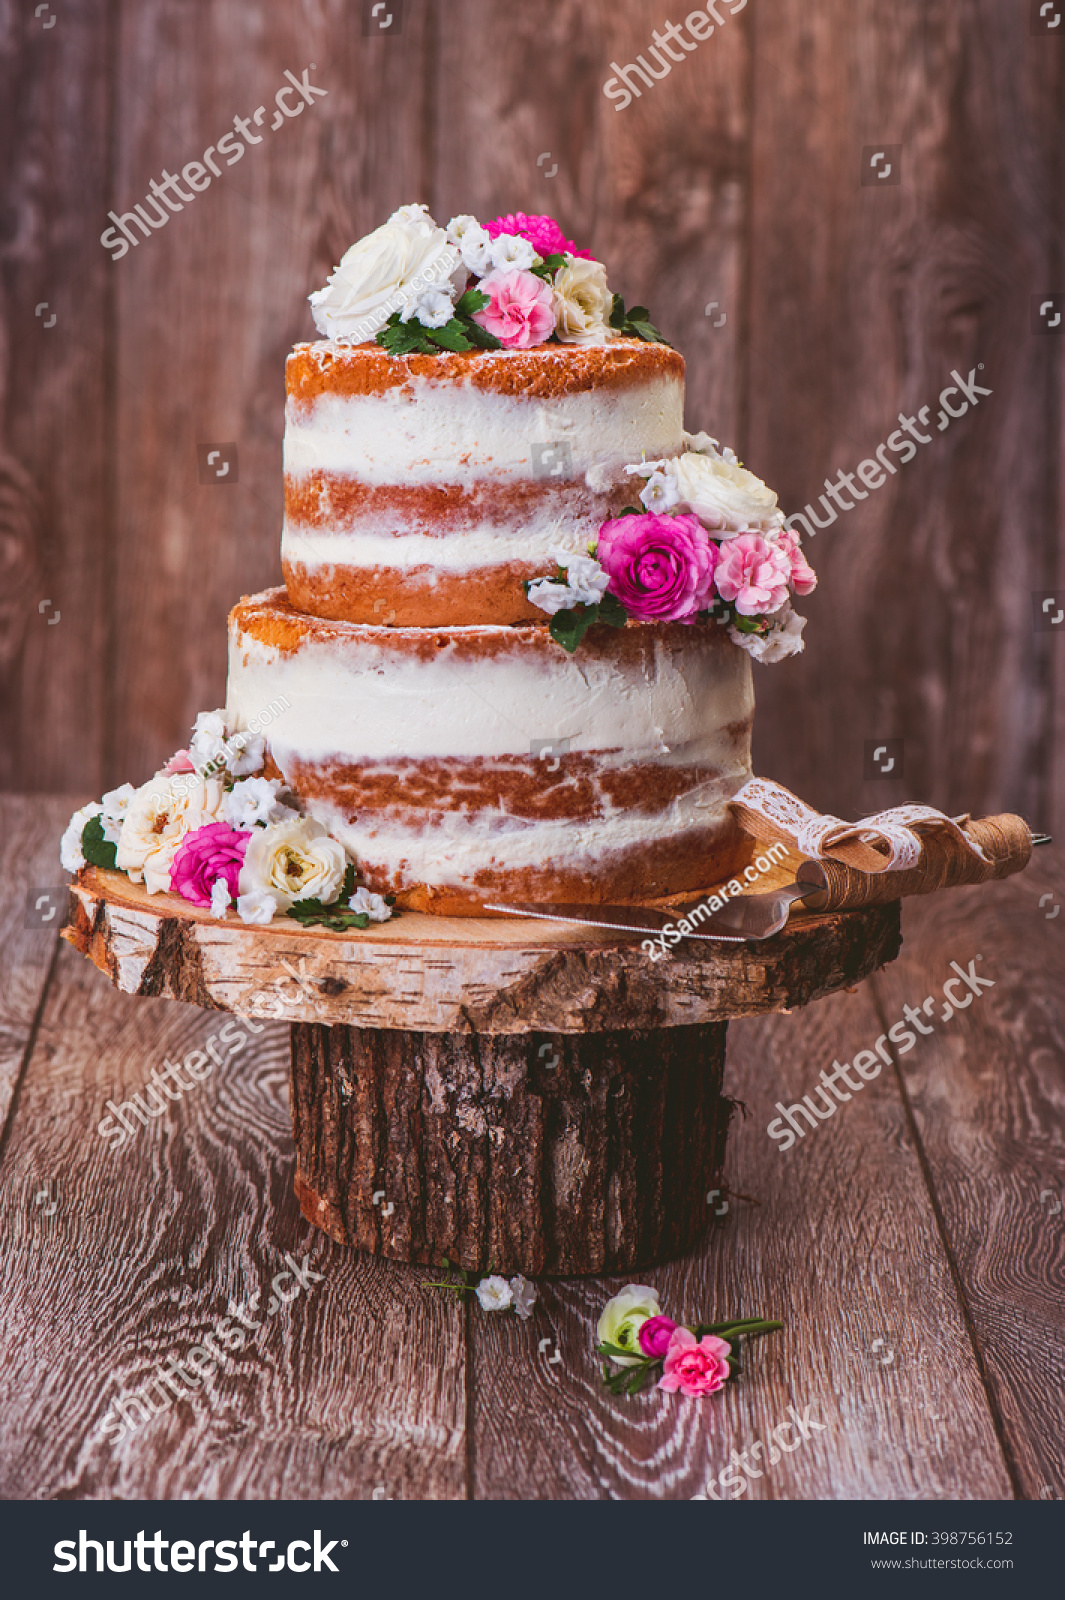 Homemade Wedding Naked Cake Decorated Flowers Stock Photo